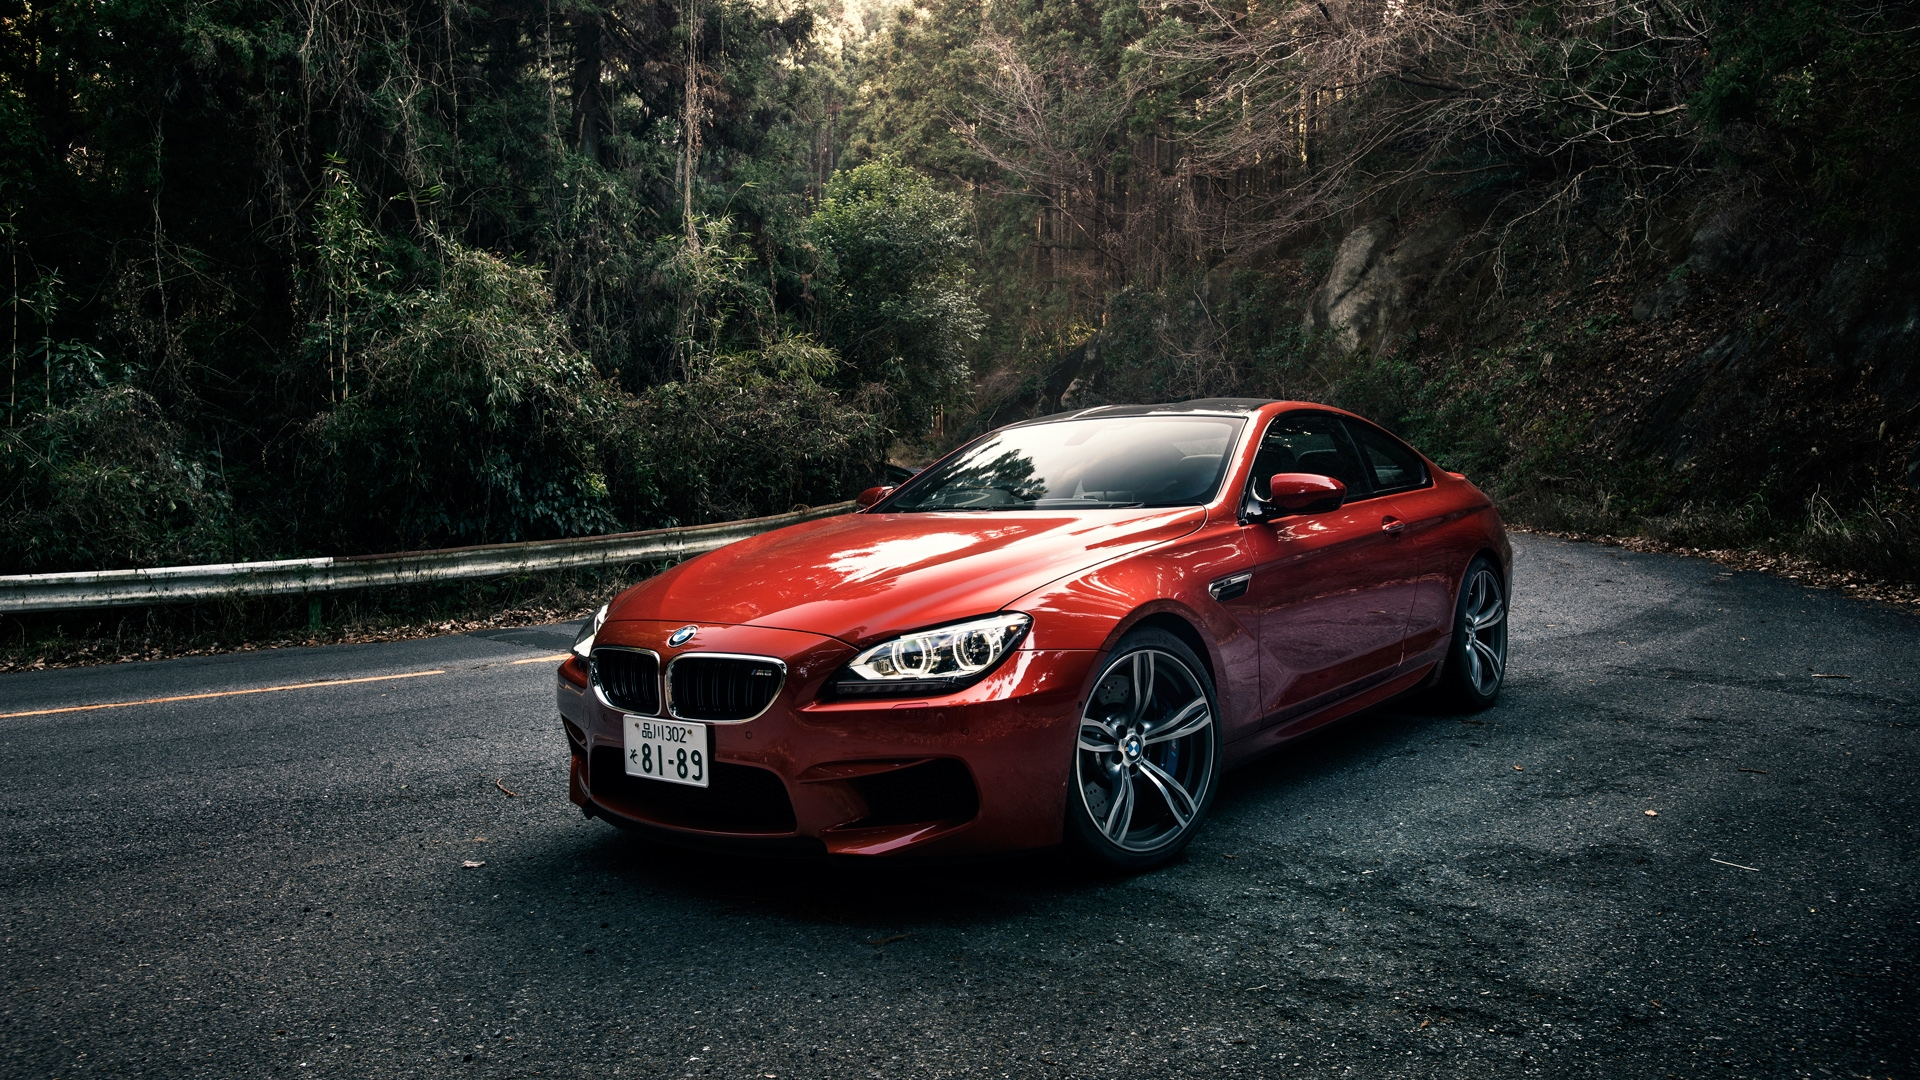 bmw m6 new wallpapers